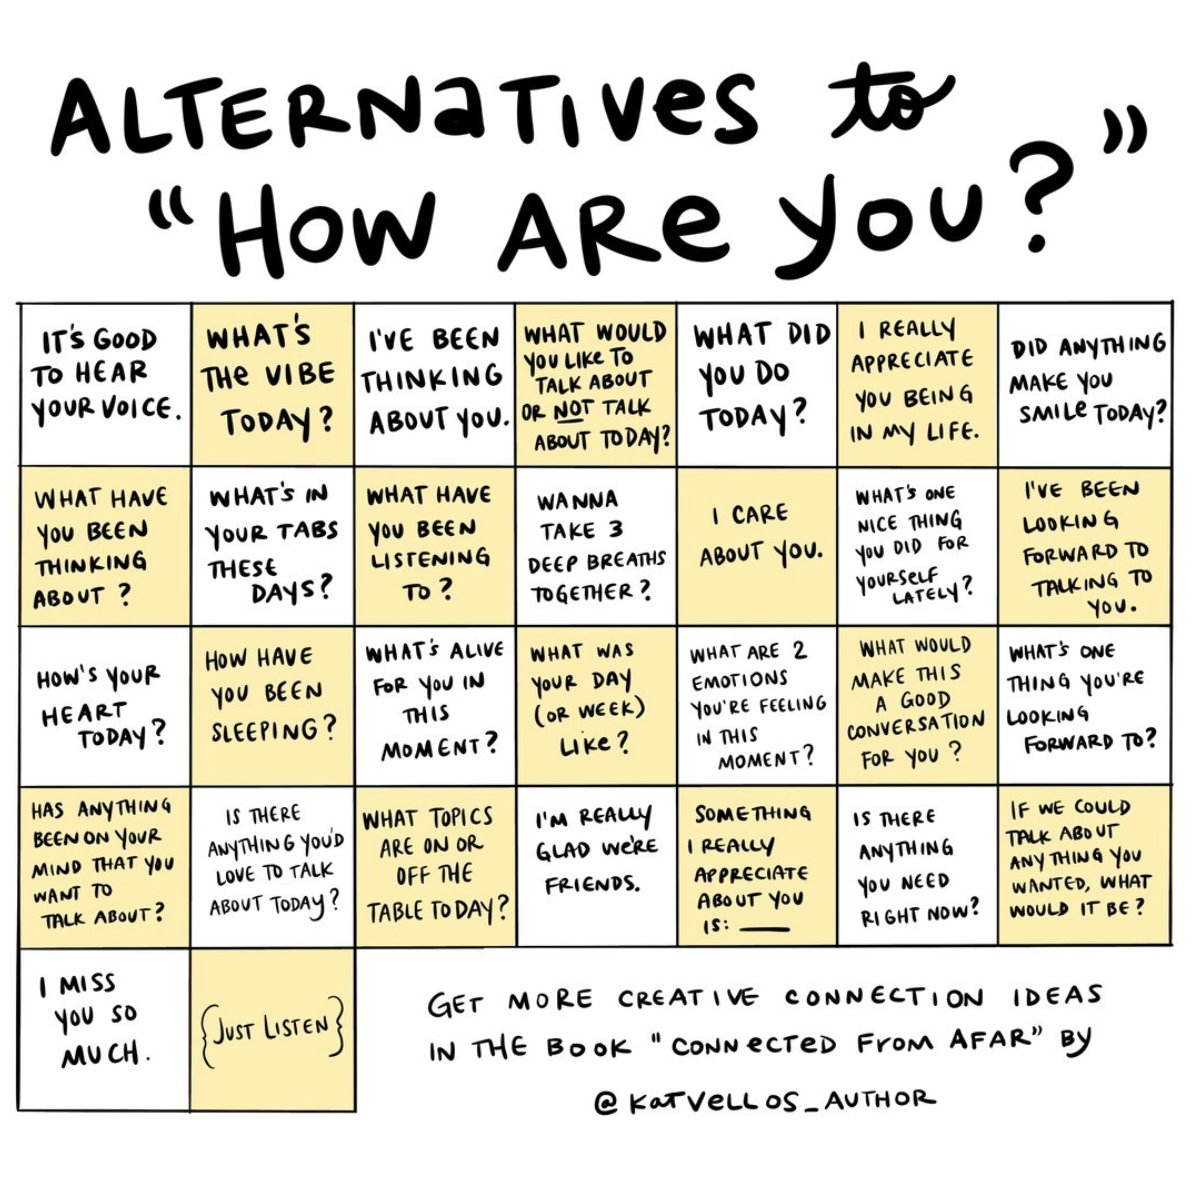 """Folks on IG really liked this so I'm sharing here for all my twitter friends too — It's a full month of alternatives to the question """"How are you?"""" Enjoy and share as much as you like 😘 https://t.co/opRU5l2PsR"""